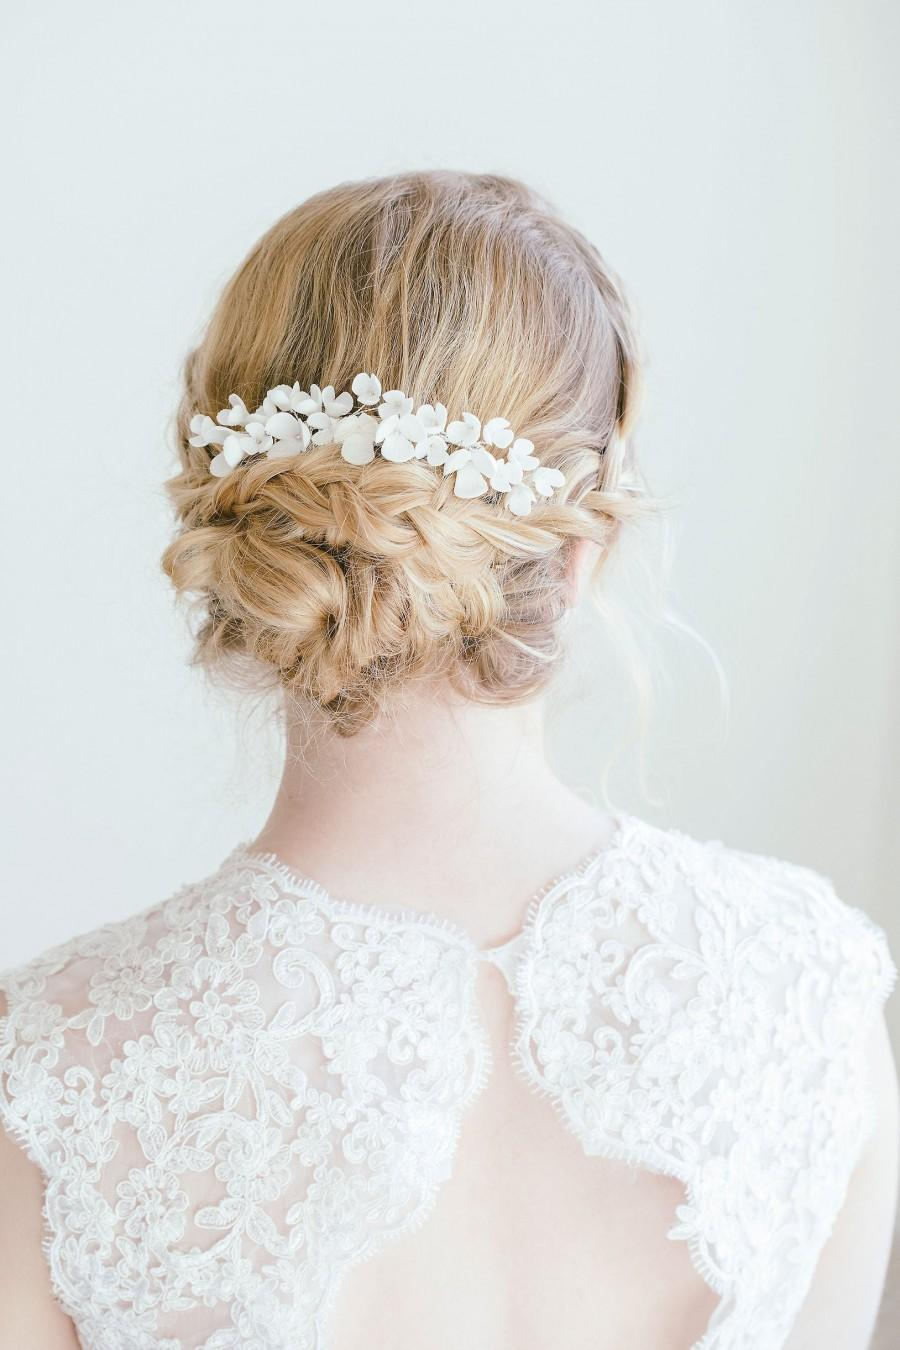 Mariage - Bridal Floral Hair Comb, Ivory Flower Hair Comb, Bridal Hair Flower, Flower Hair Vine, White Flower Comb, Gold Flower Hair Comb